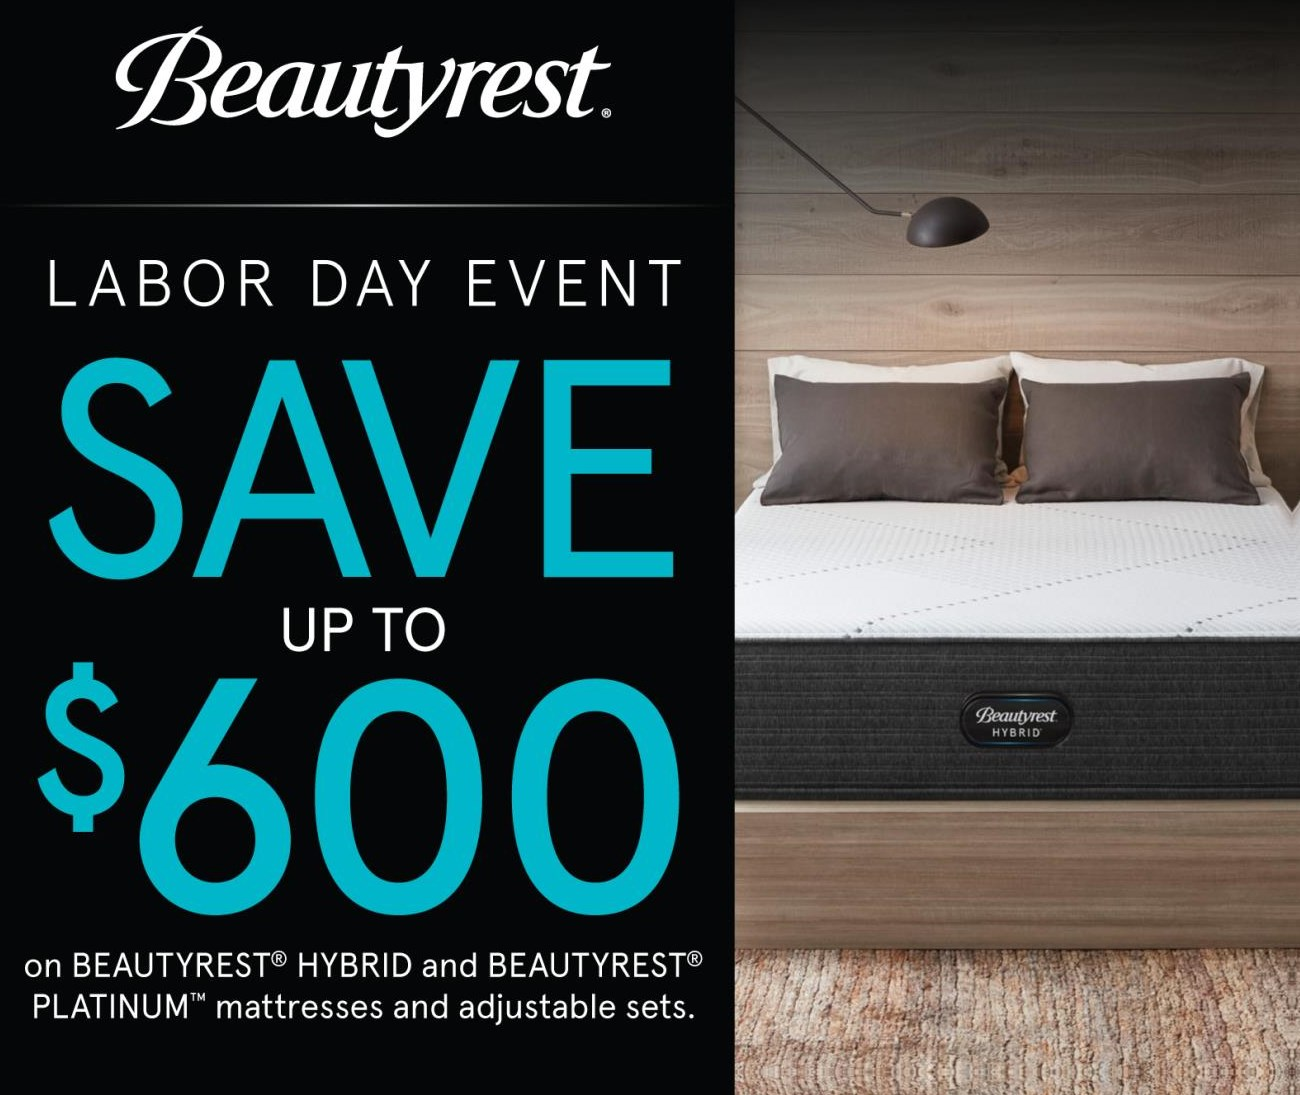 Beautyrest save up to $600!!!